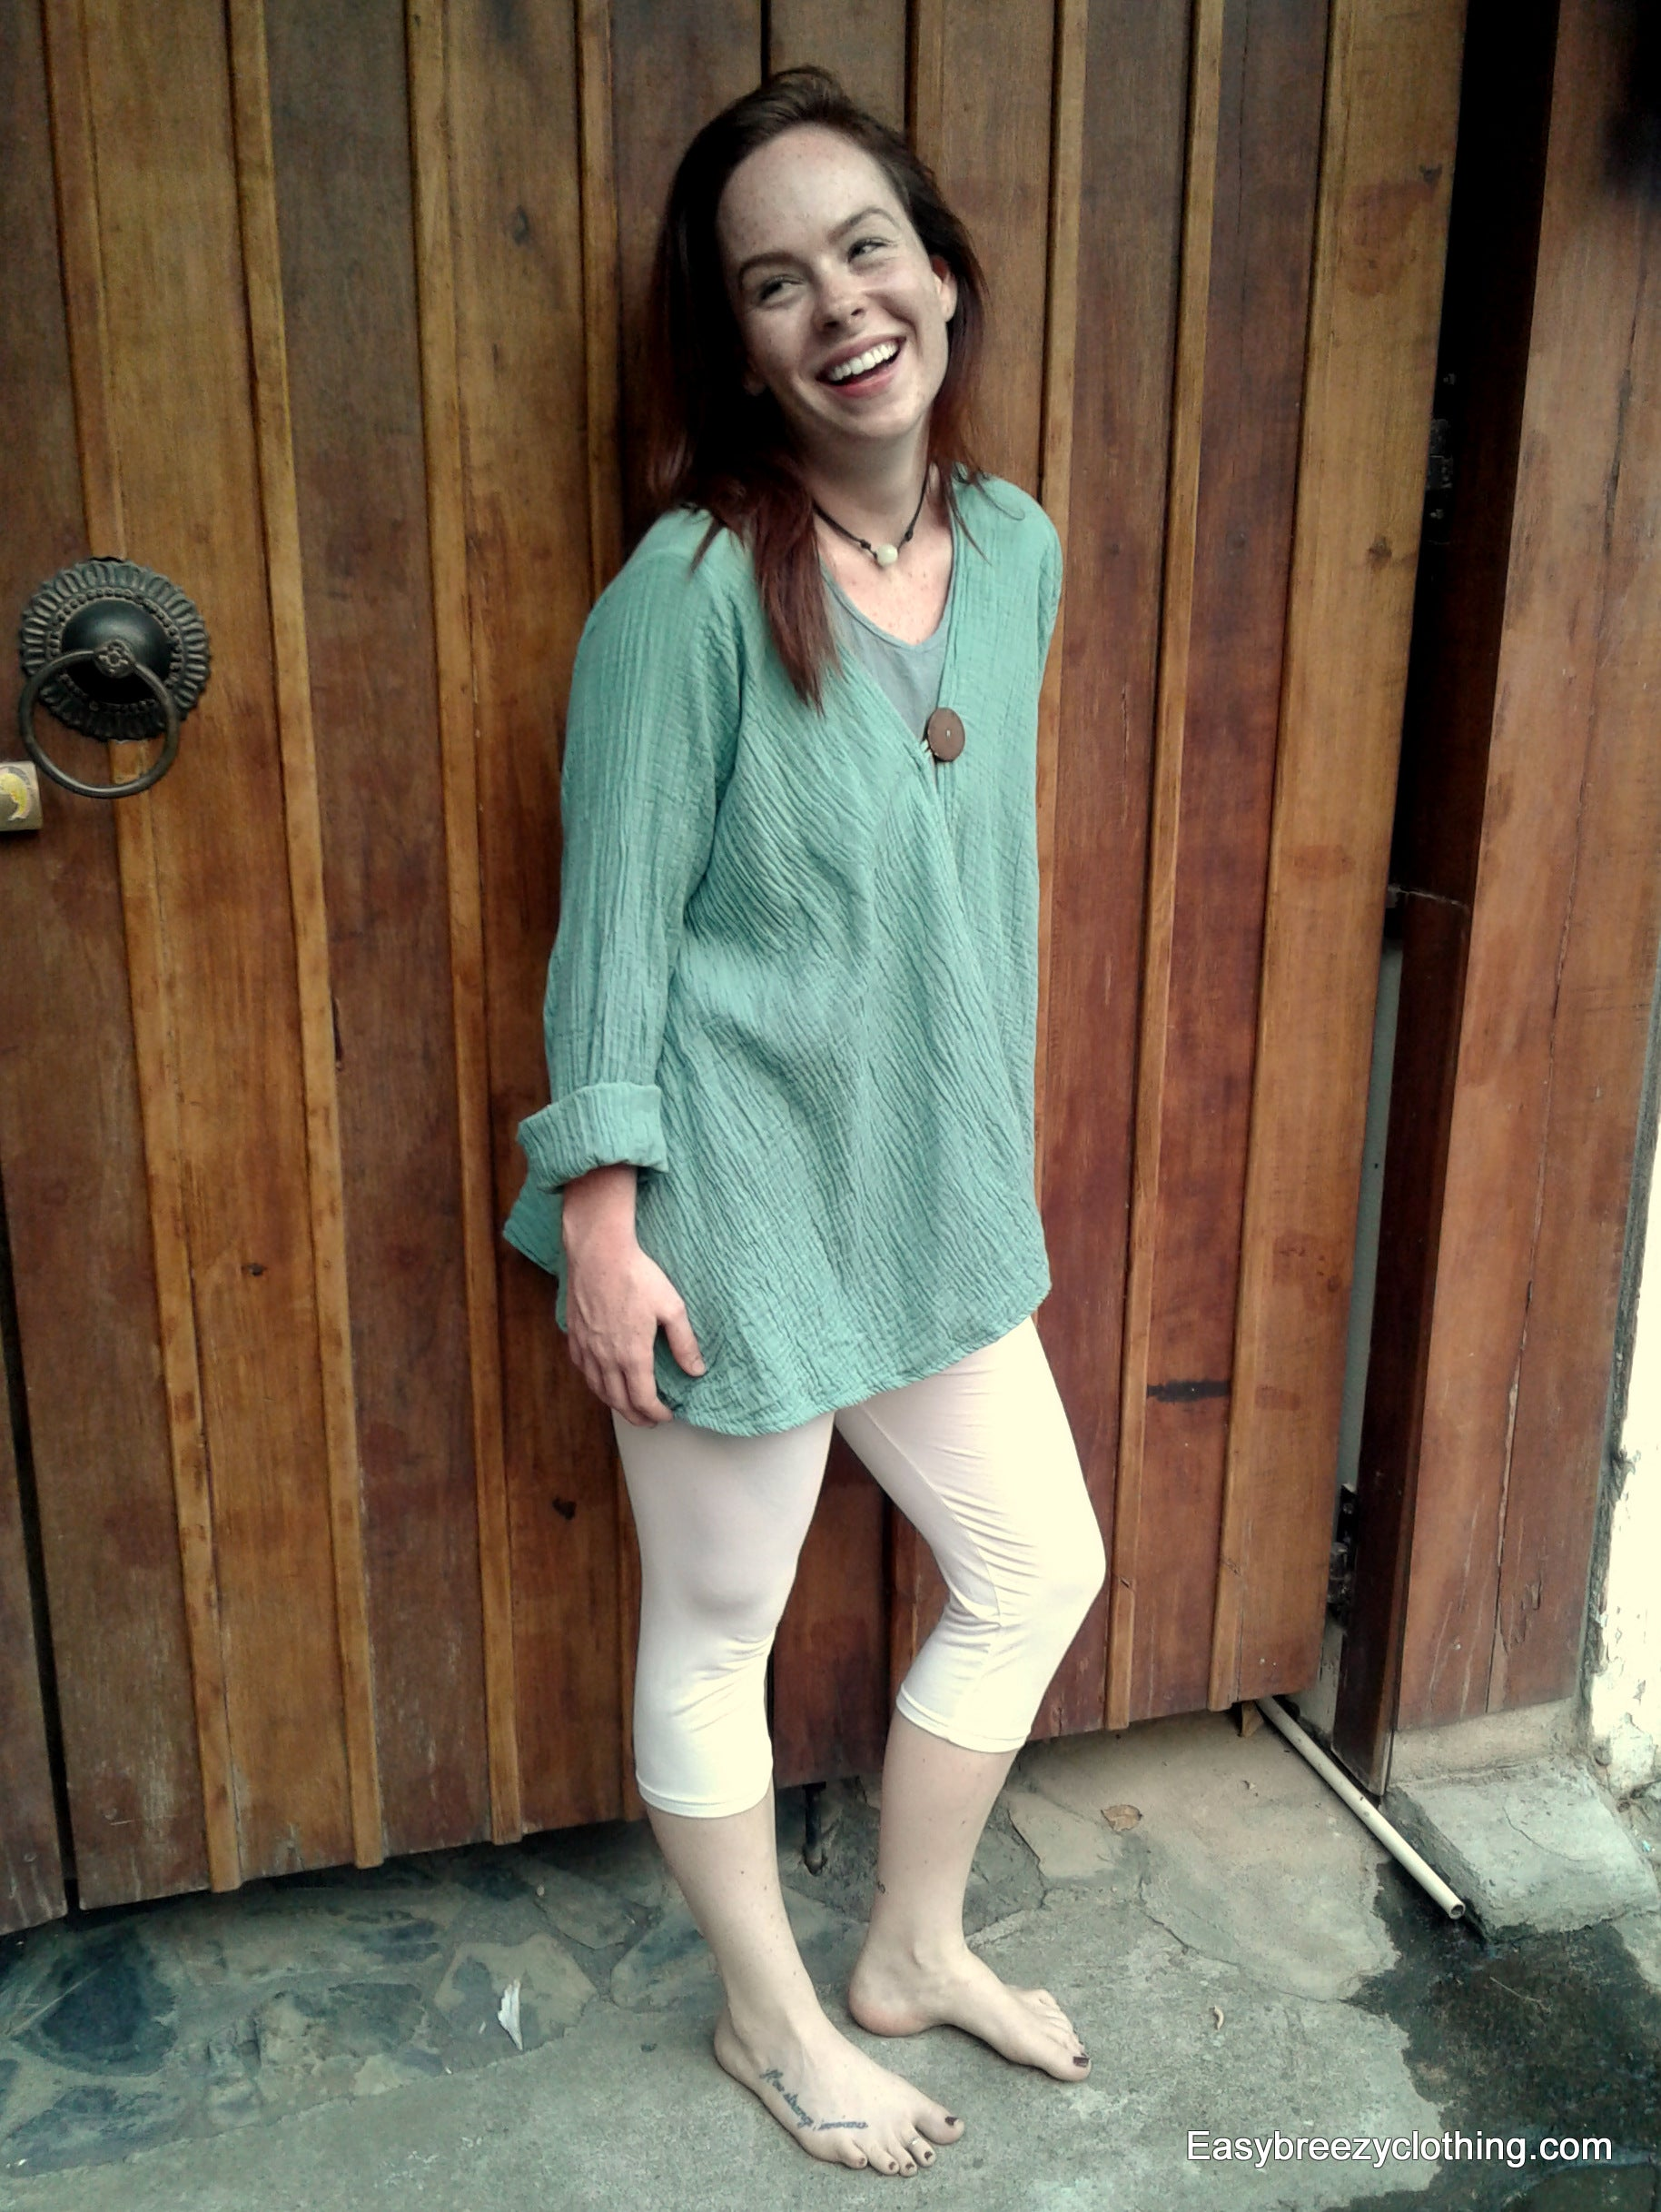 Lightweight  Summer Cardigan for Women,Double Gauze Tops,[Easy Breezy Clothing]